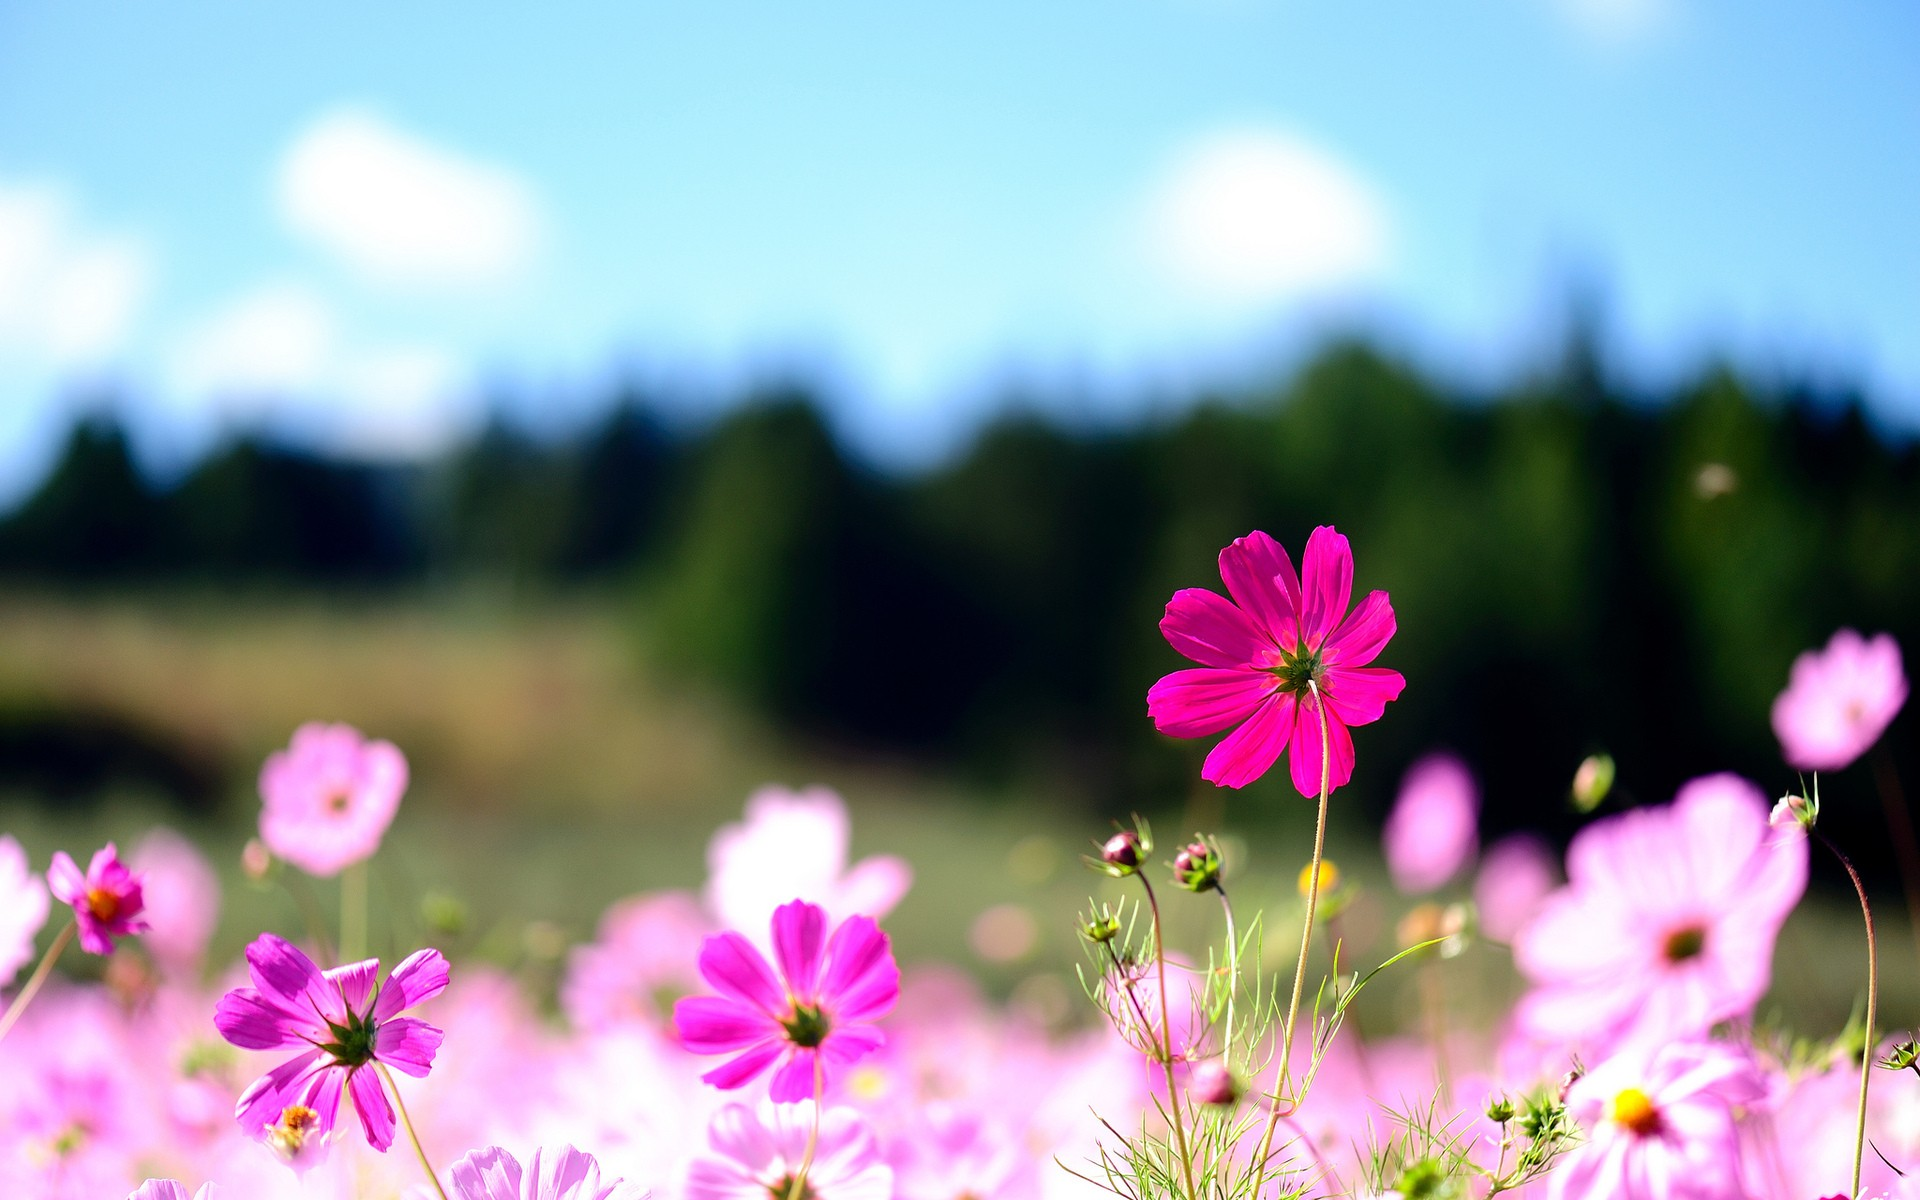 Floral Desktop Wallpaper Download Free Cool Full Hd Wallpapers